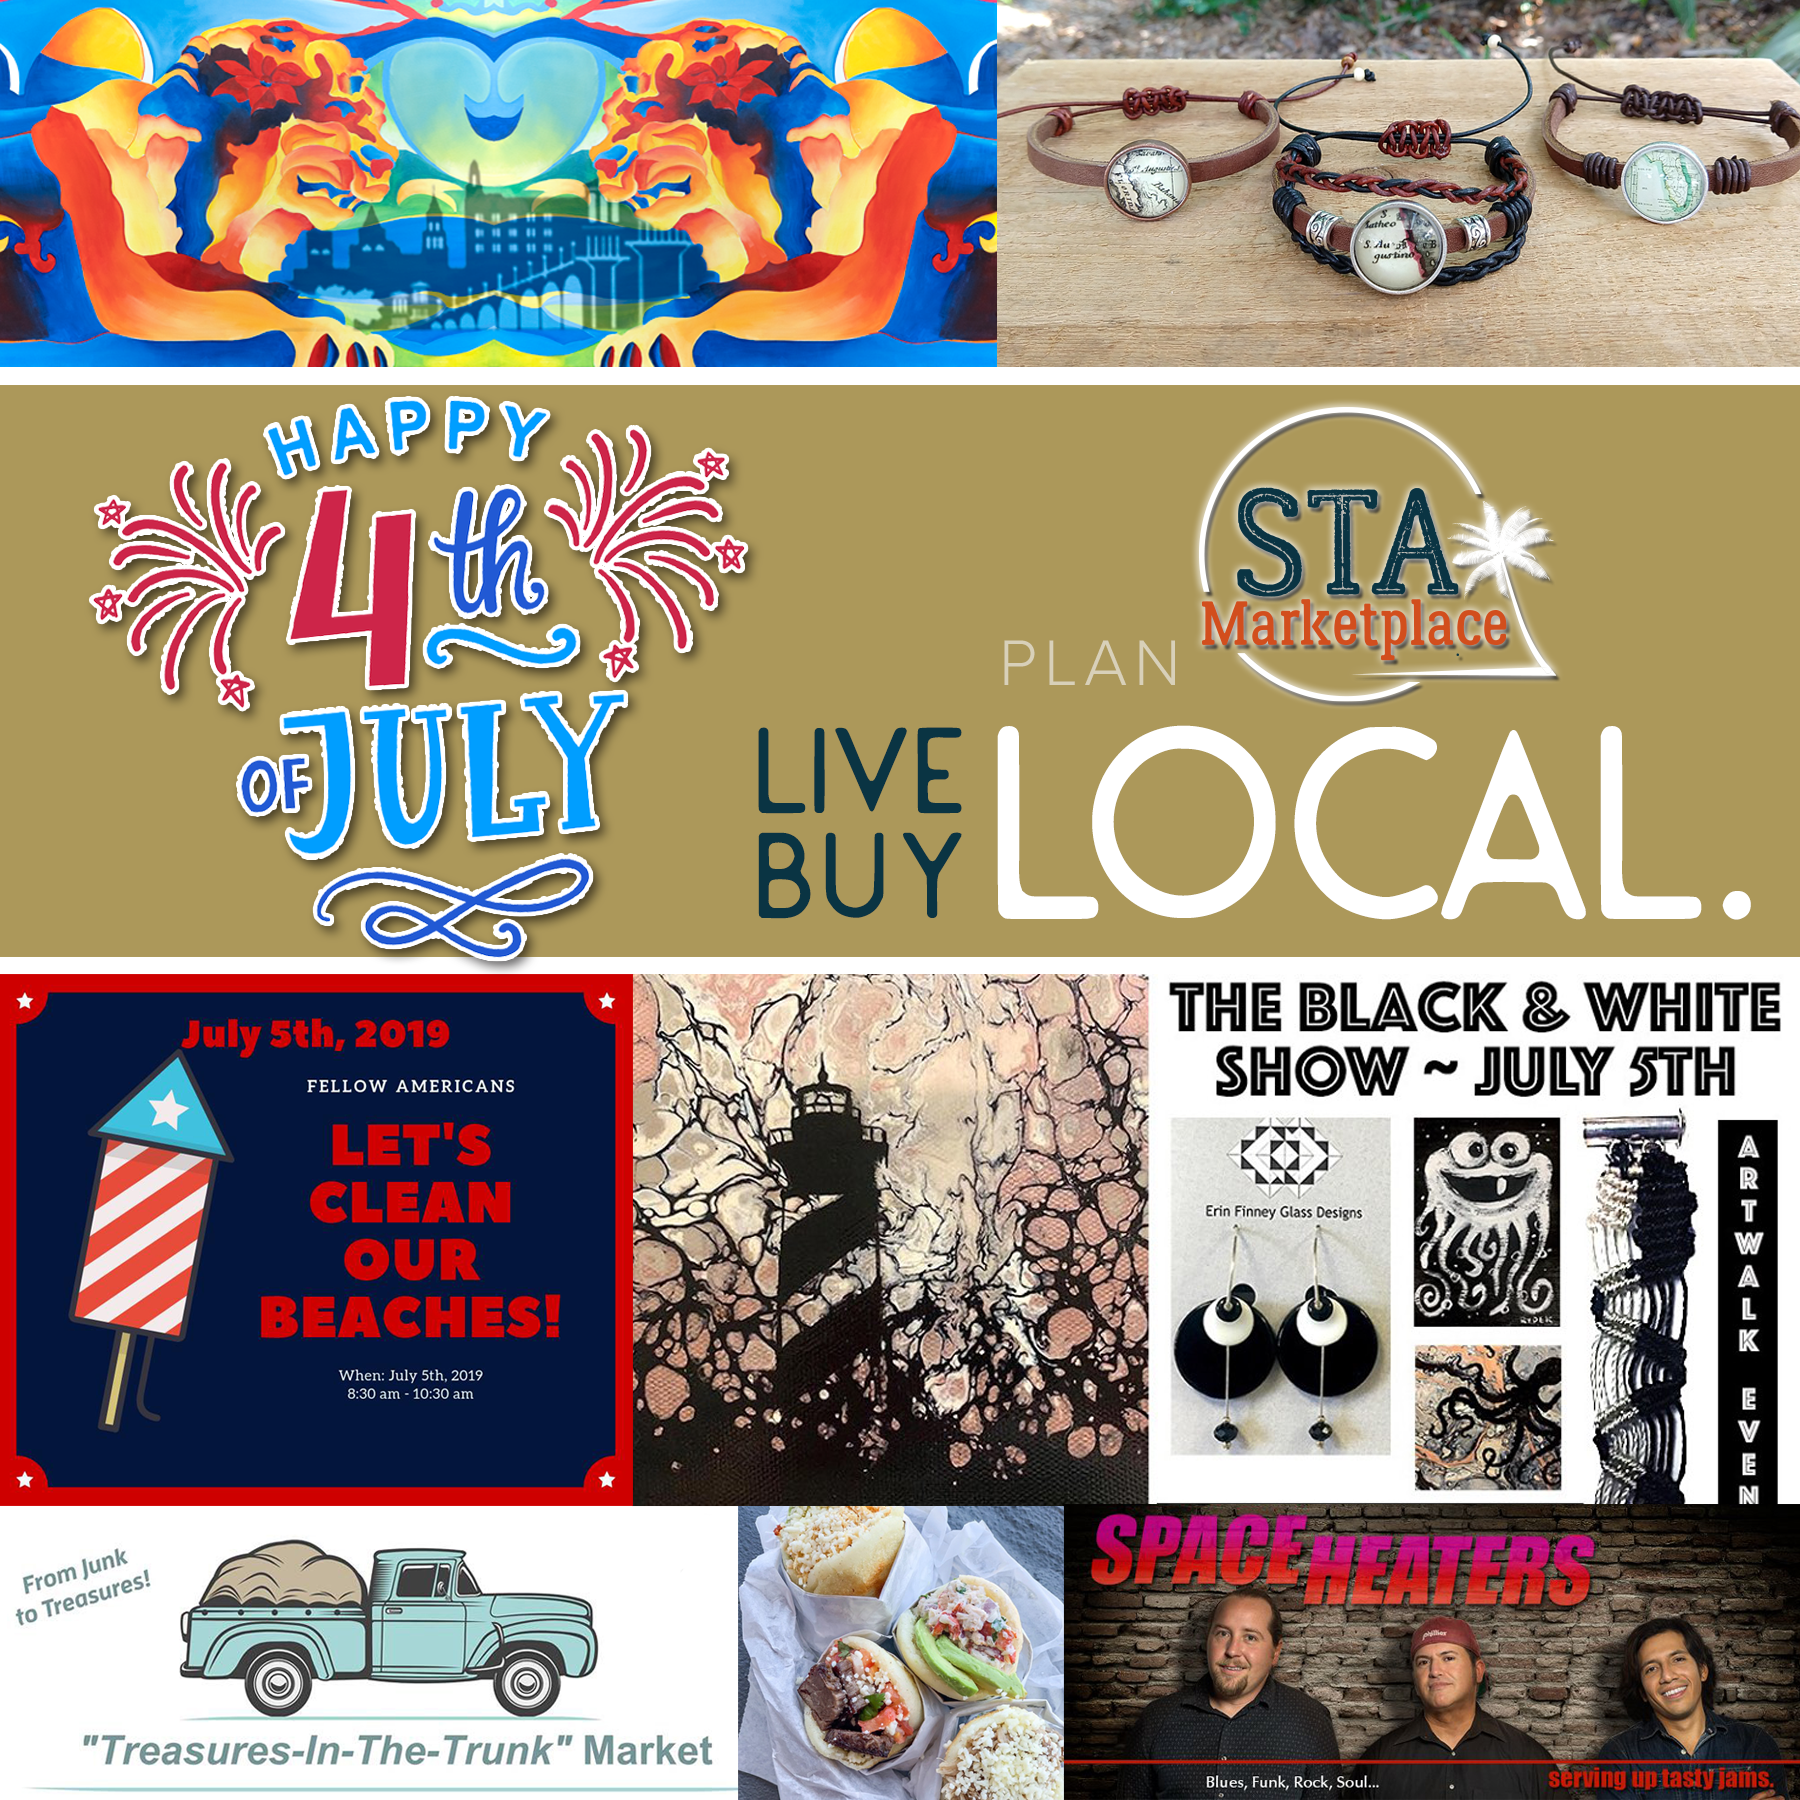 Plan to Live Local Buy Local - STA Marketplace - July 4th.png